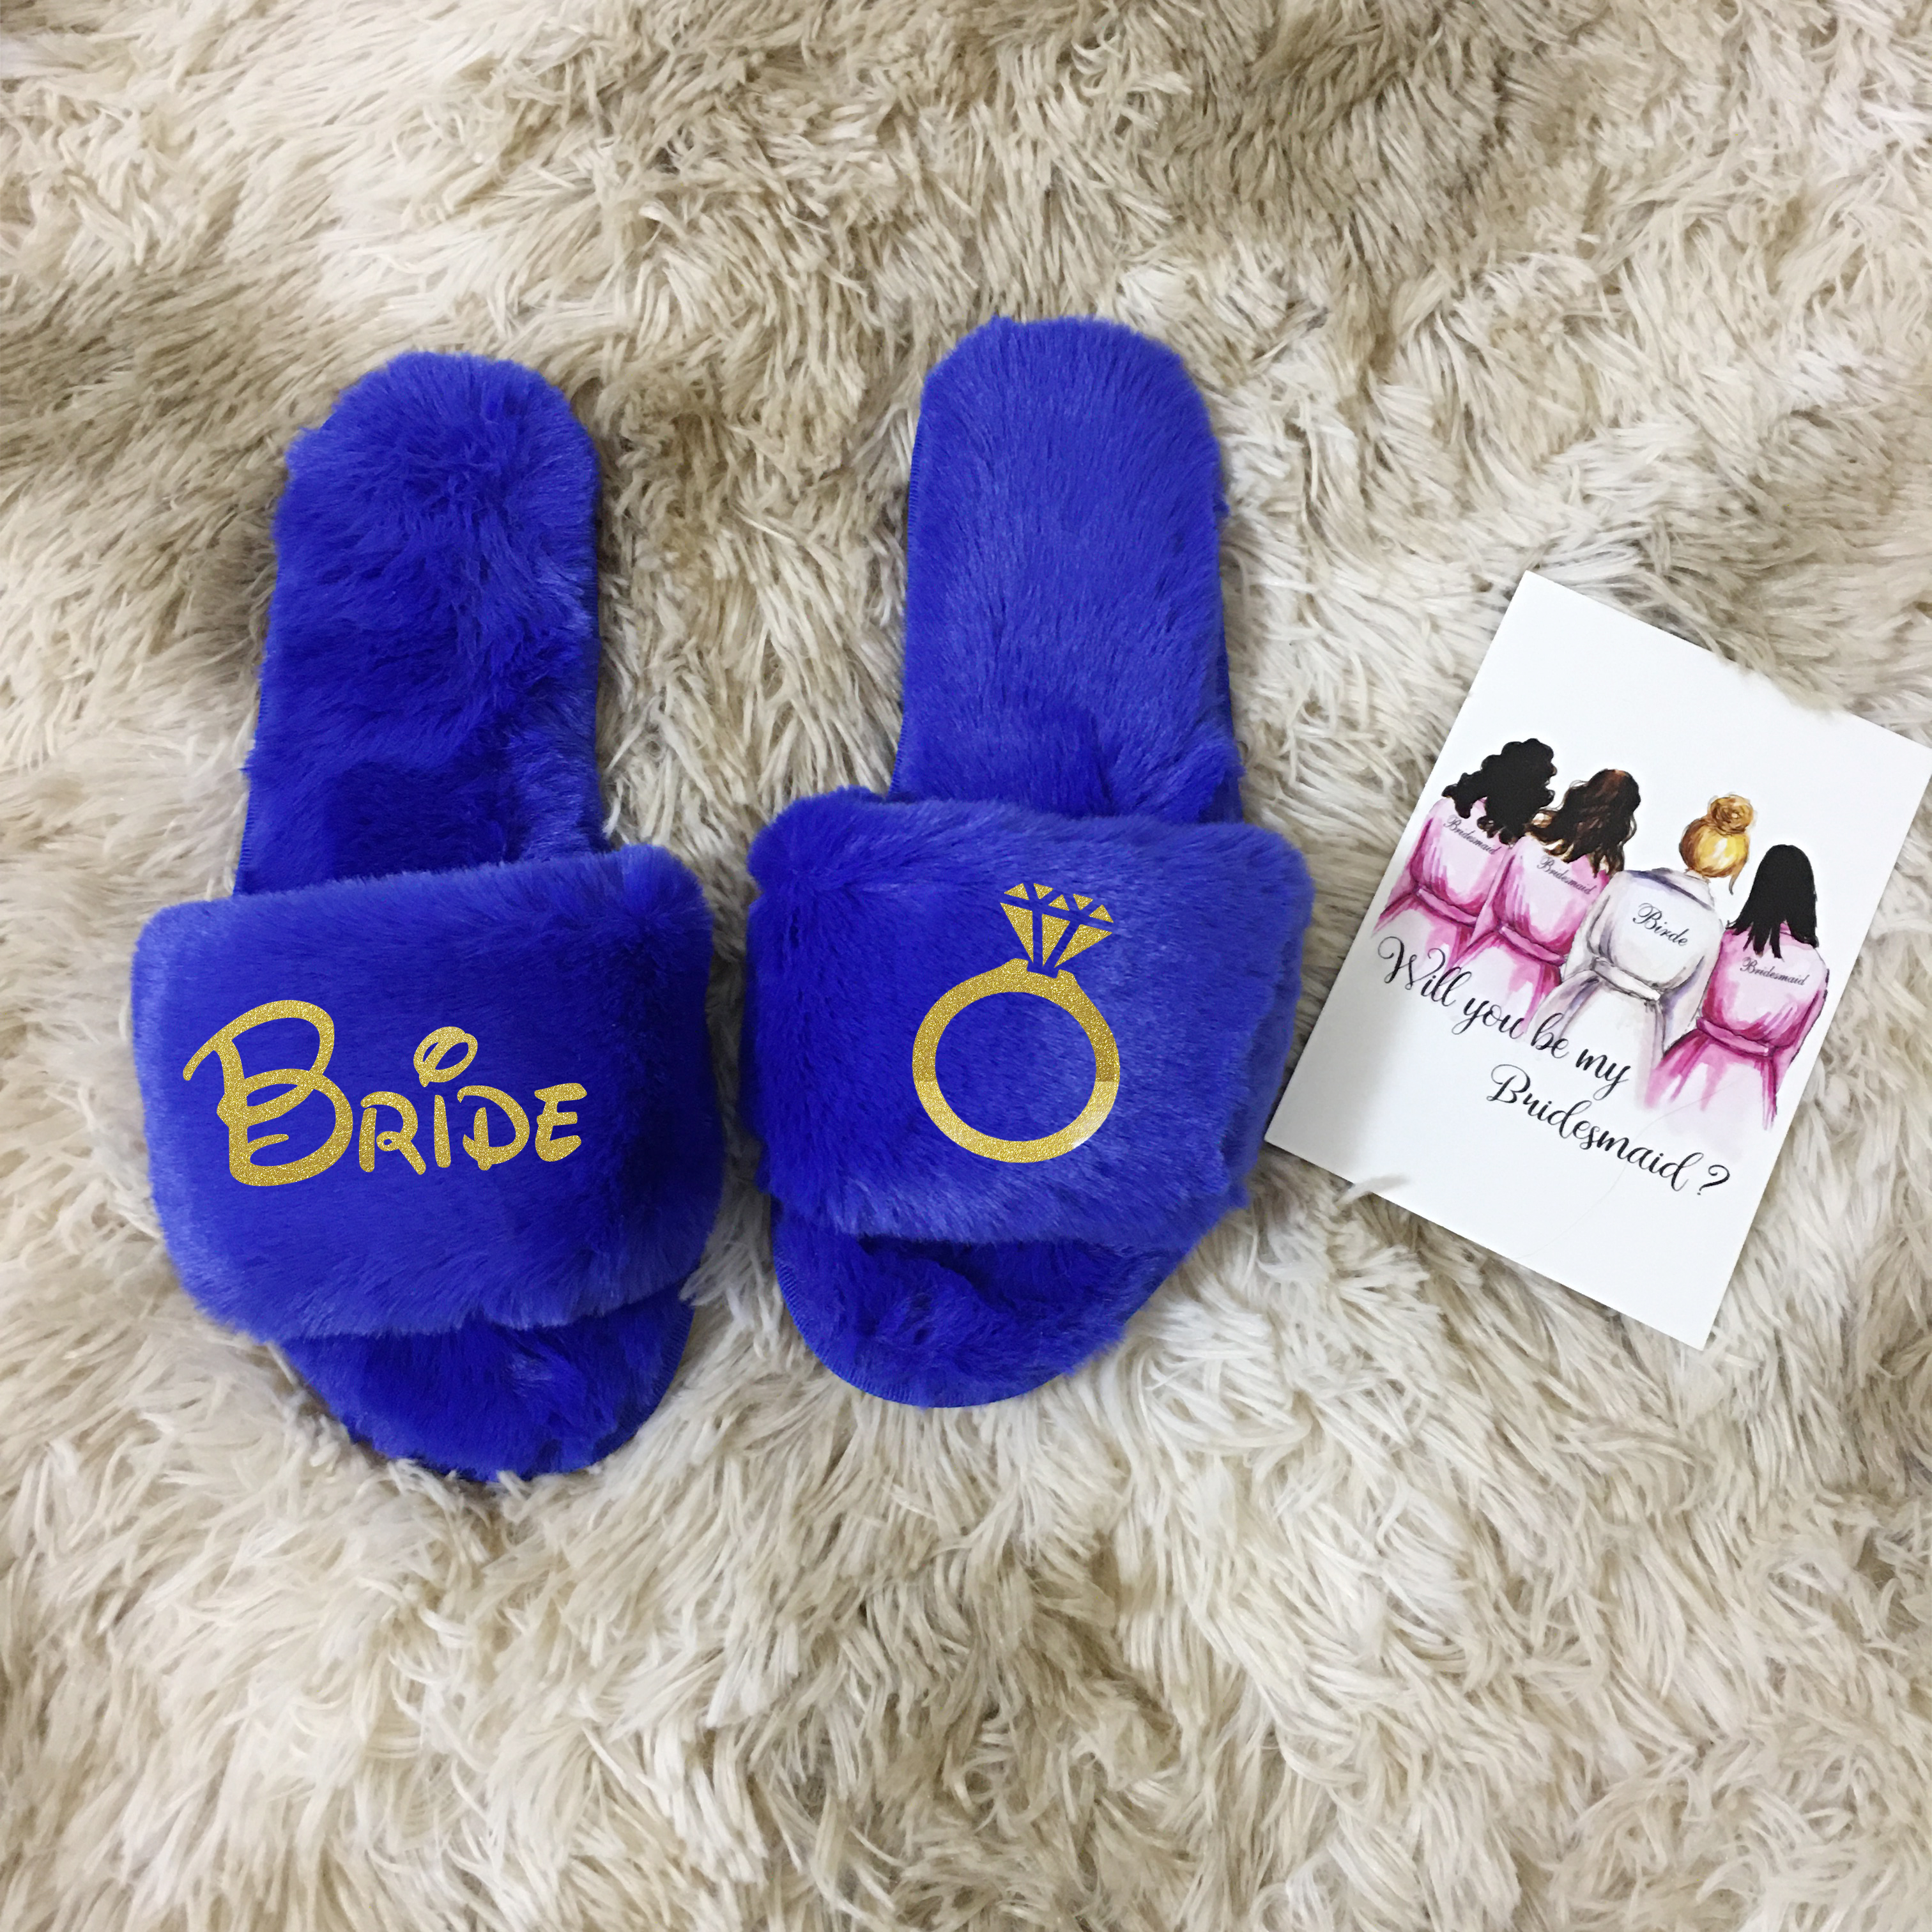 Customized Coral Fleece Slippers Team Bride To Be Bridesmaid Gift Bachelorette Hen Party Gifts For Wedding Guests Slippers